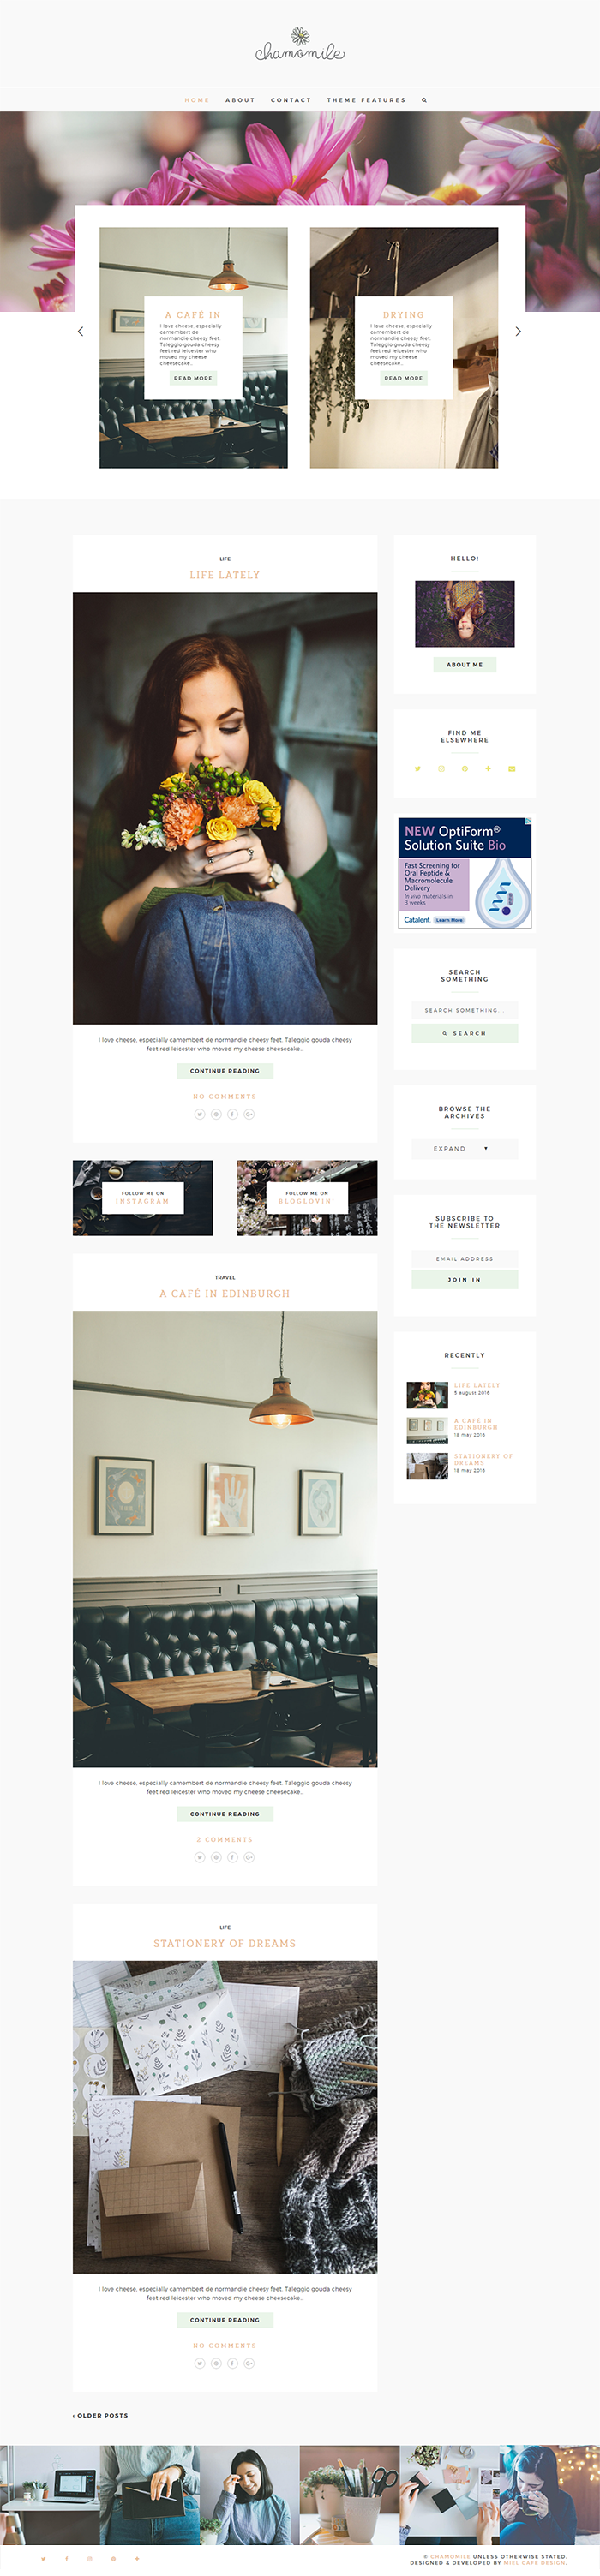 Chamomile Semi-Custom WordPress Theme - Miel Café Design